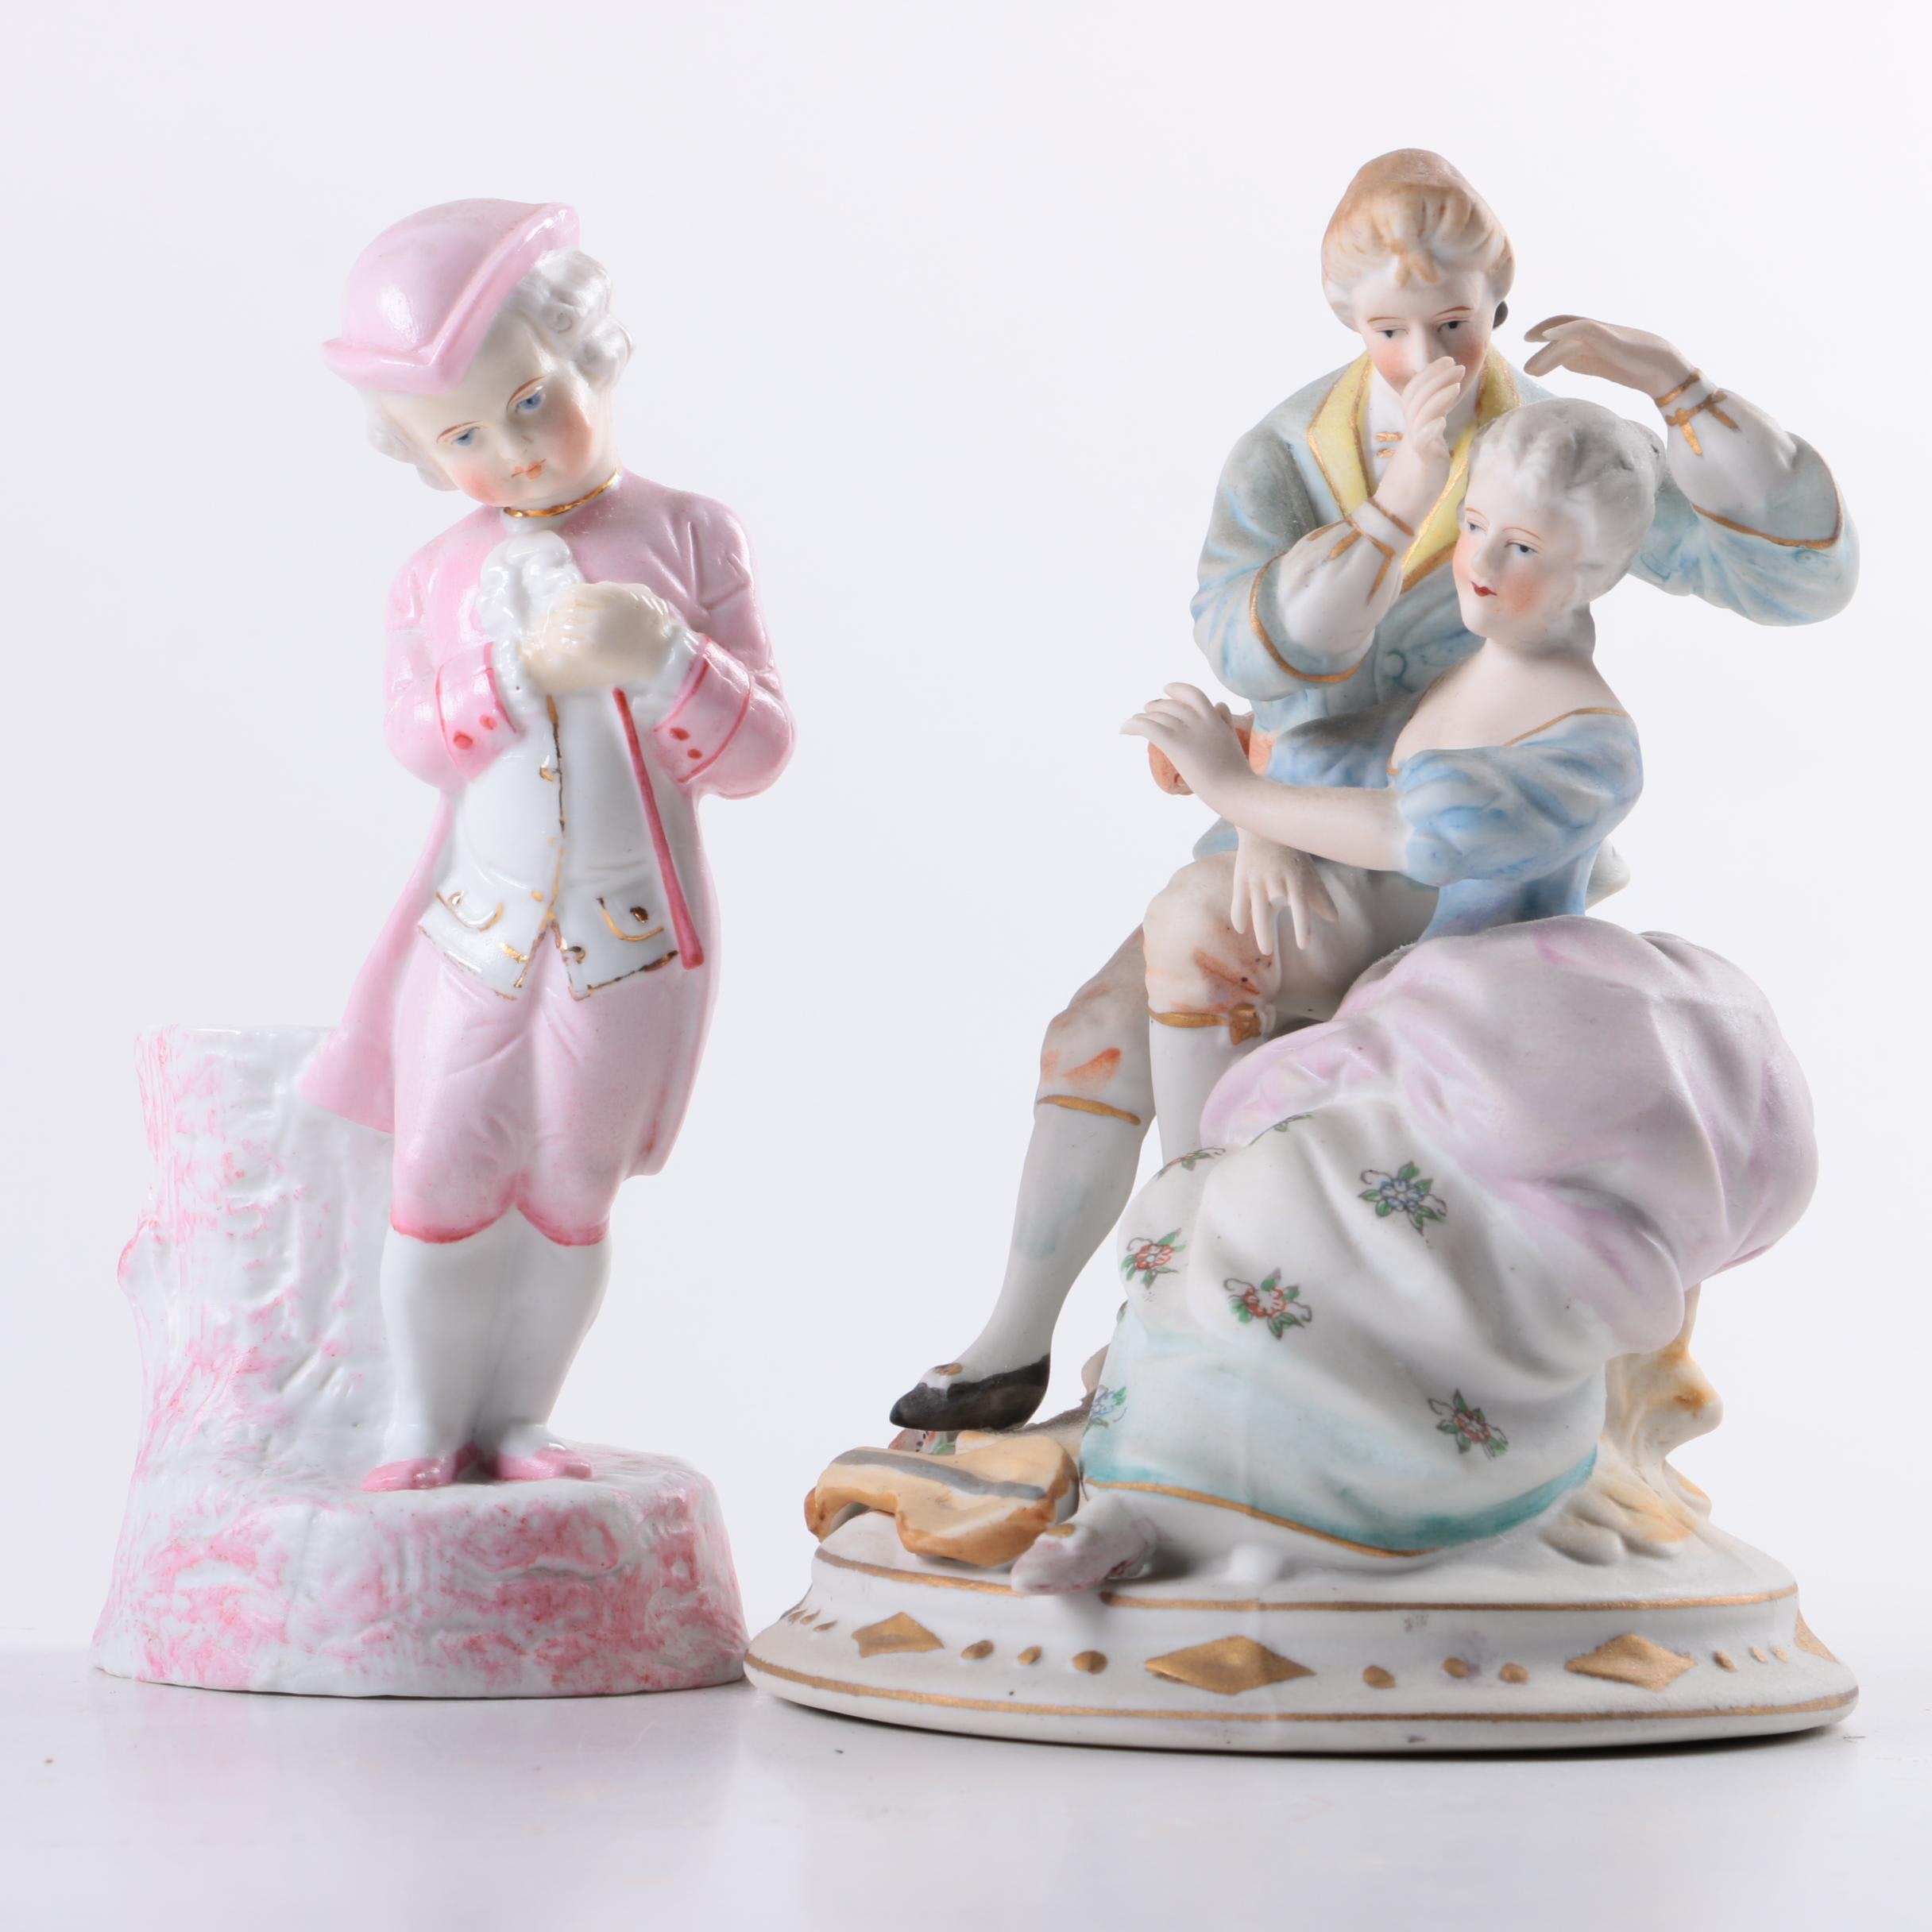 Pair of Porcelain Victorian Figurines